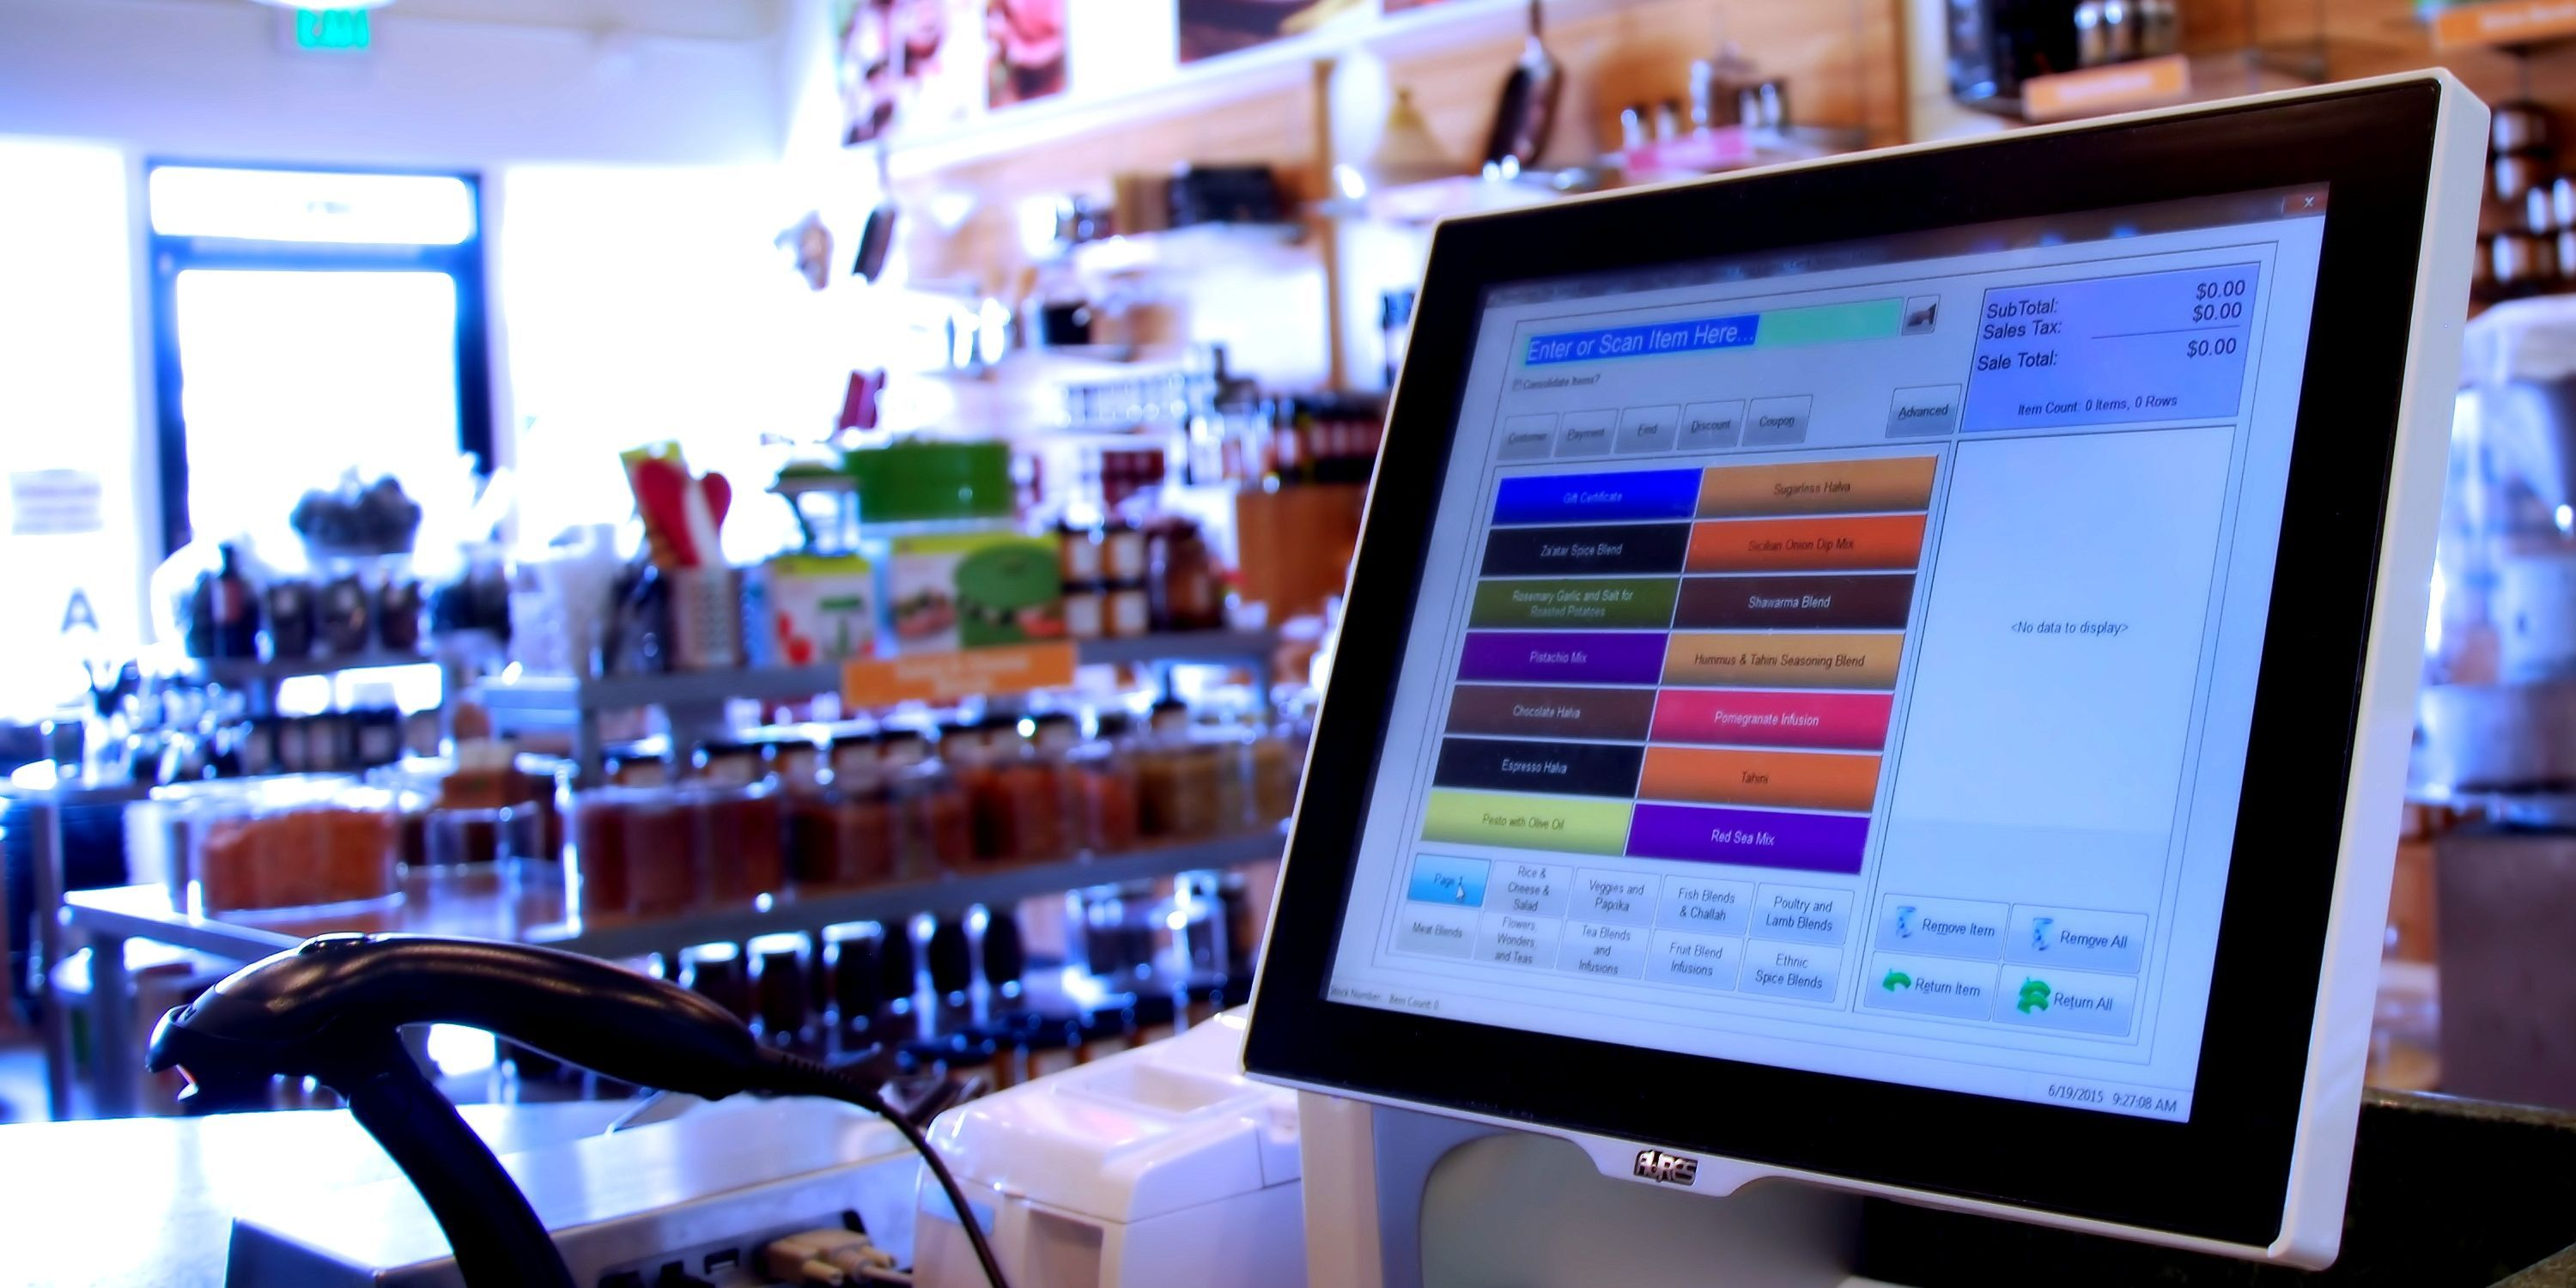 POS Software | Point of Sale Software for Retail | RetailEdge